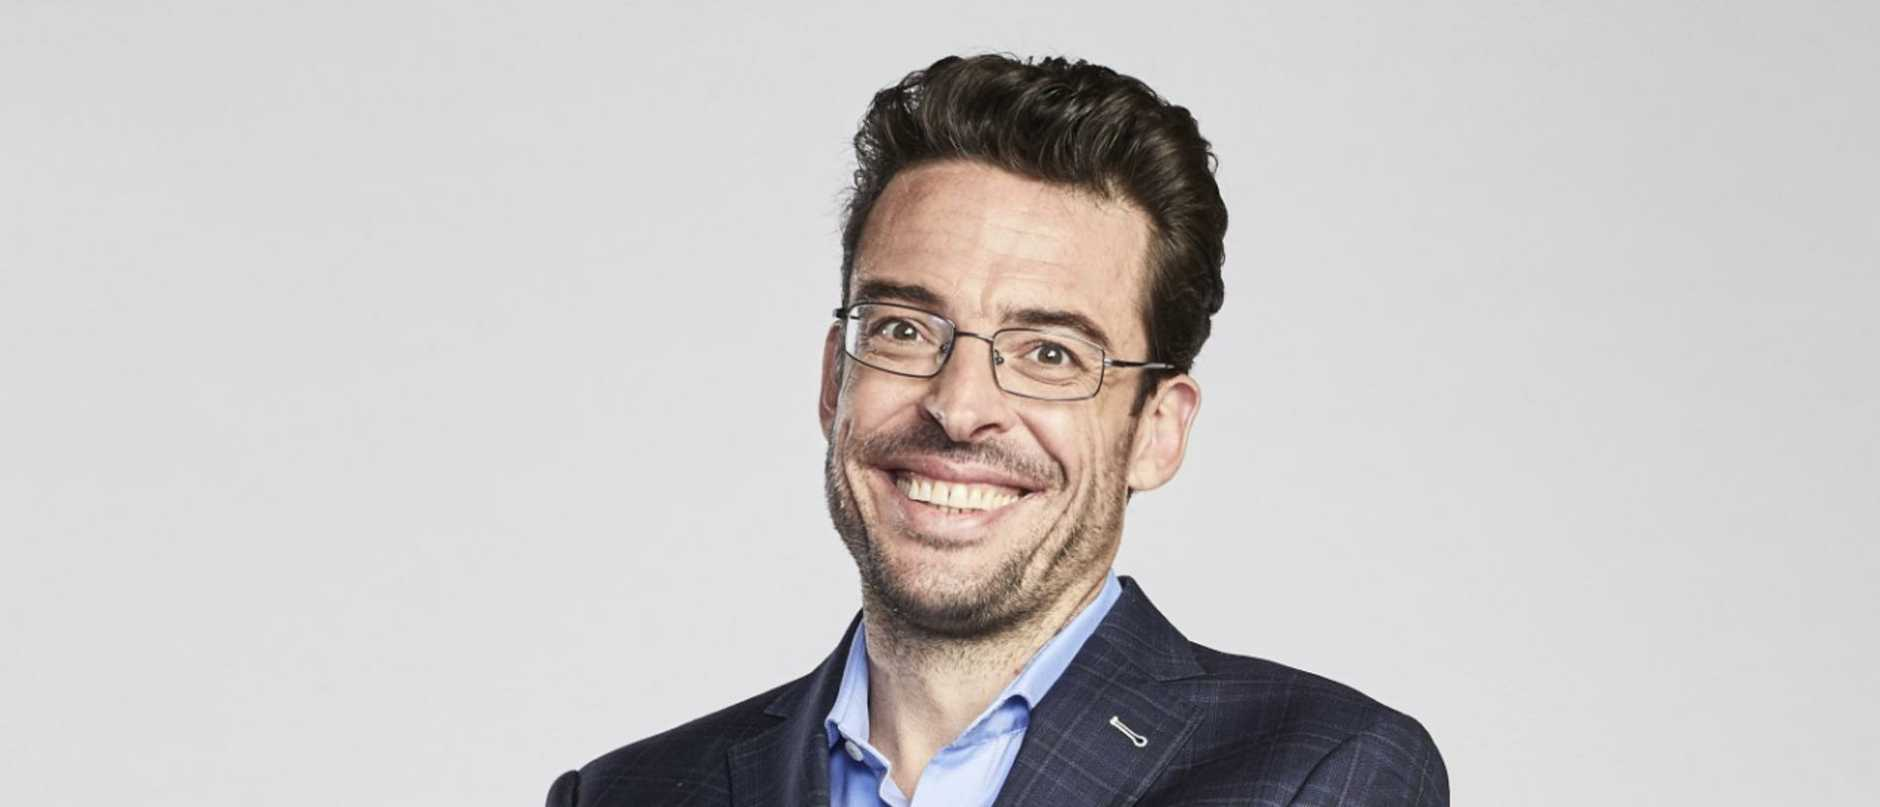 Daily Telegraph columnist Joe Hildebrand